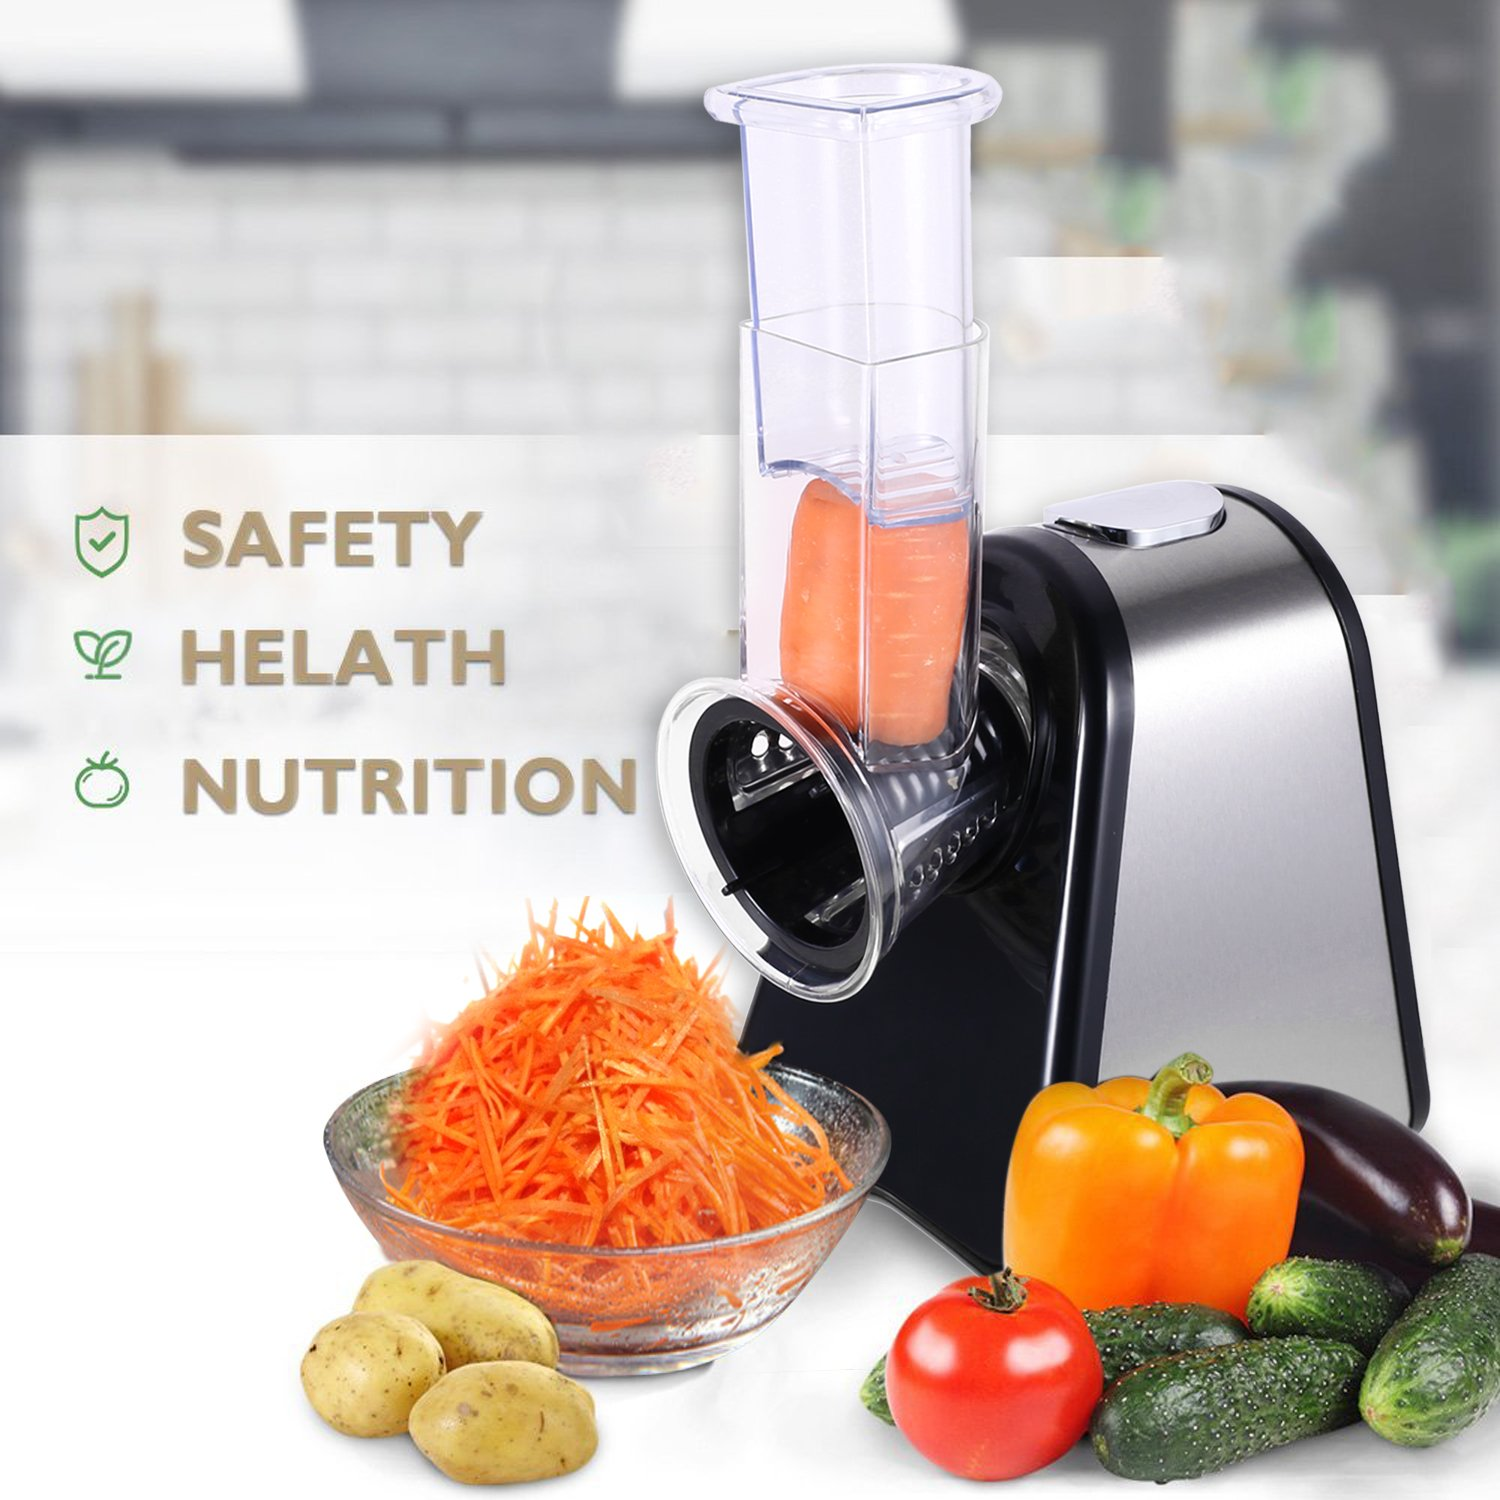 Automatic Electric Slicer Shredder Professional Salad Maker Machine with One-Touch Control and 4 Free Attachments for fruits, vegetables, and cheeses